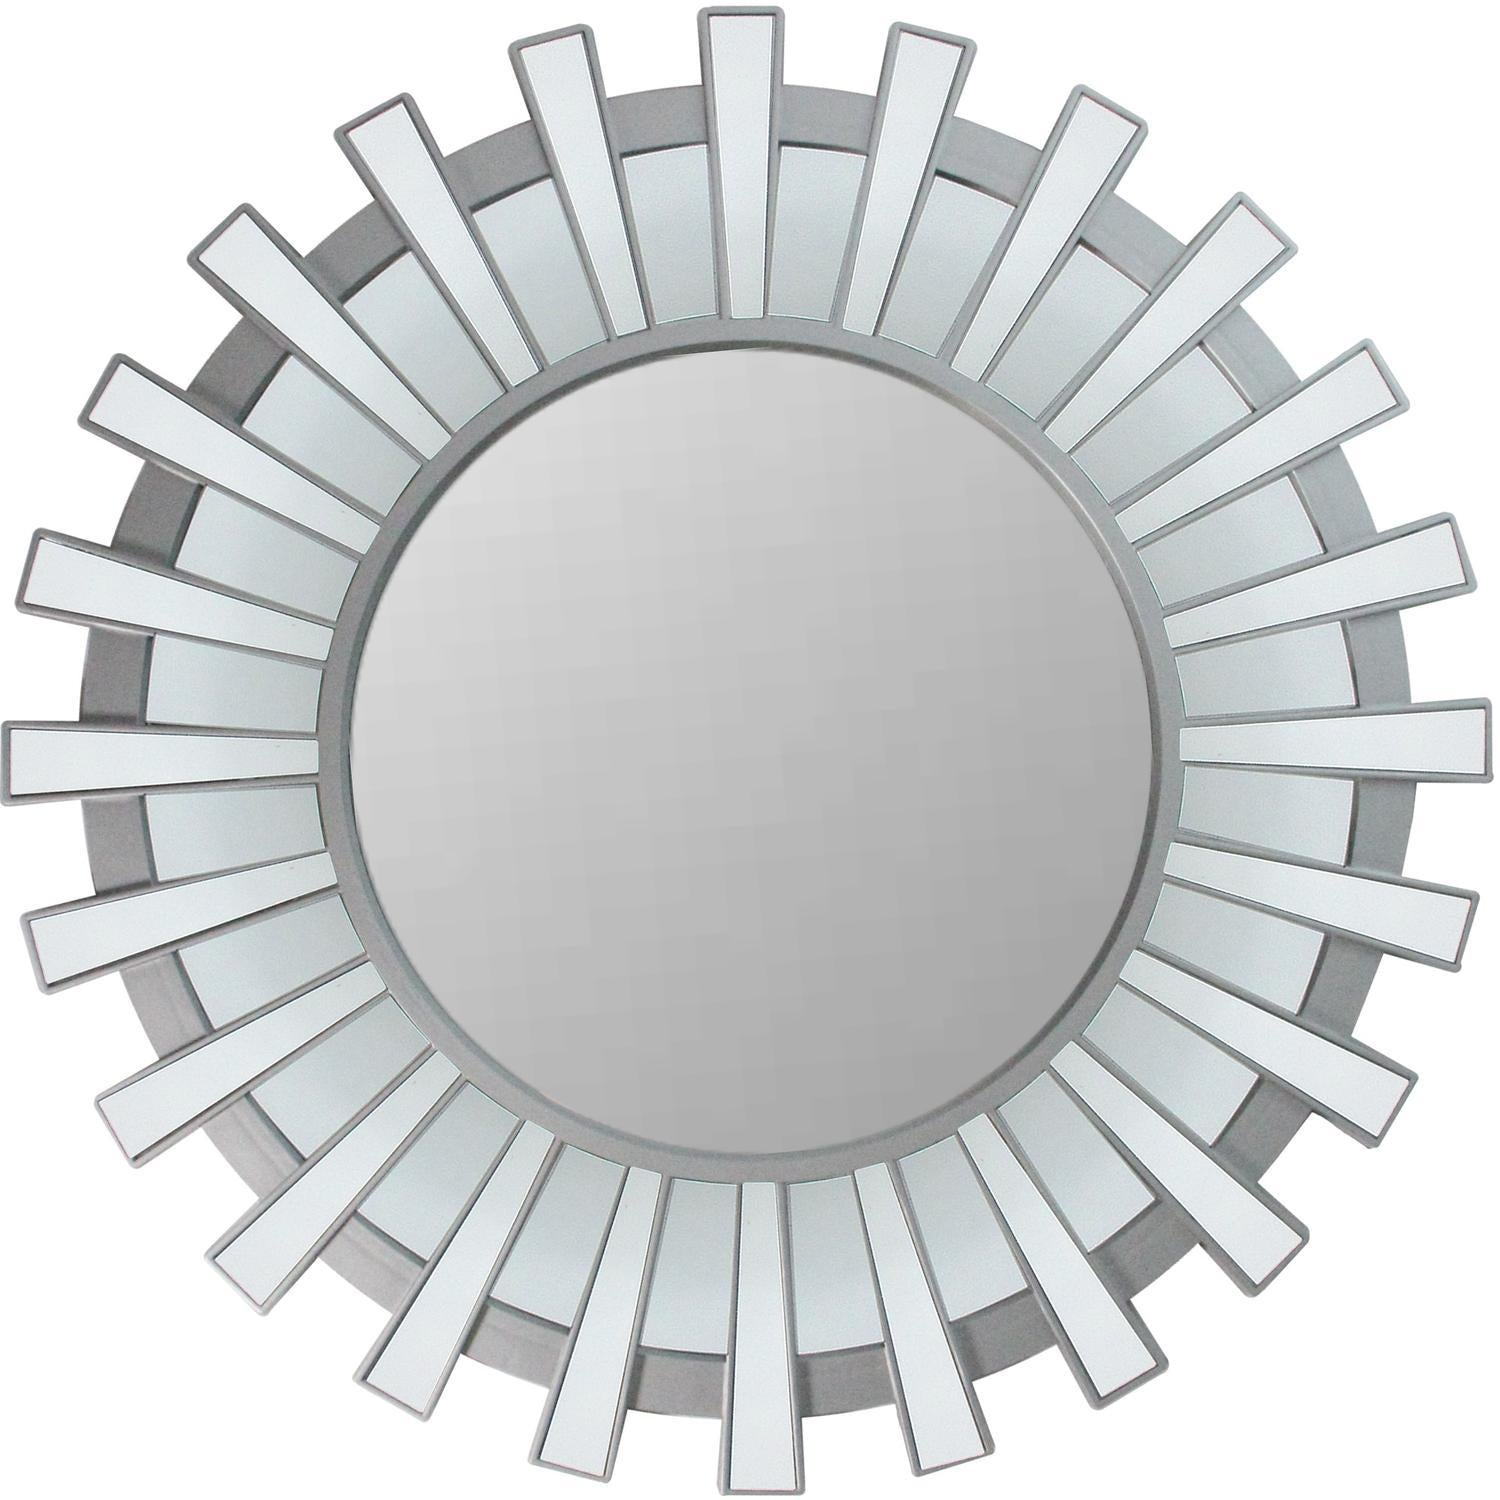 photo of the mirror without background. This beautifully crafted mirror will add a touch of modern elegance to any room in your home Features a round silver frame with mini mirrored columns inspired by a shimmering sunburst ! Can be hung vertically or horizontally Includes hanging hardware.